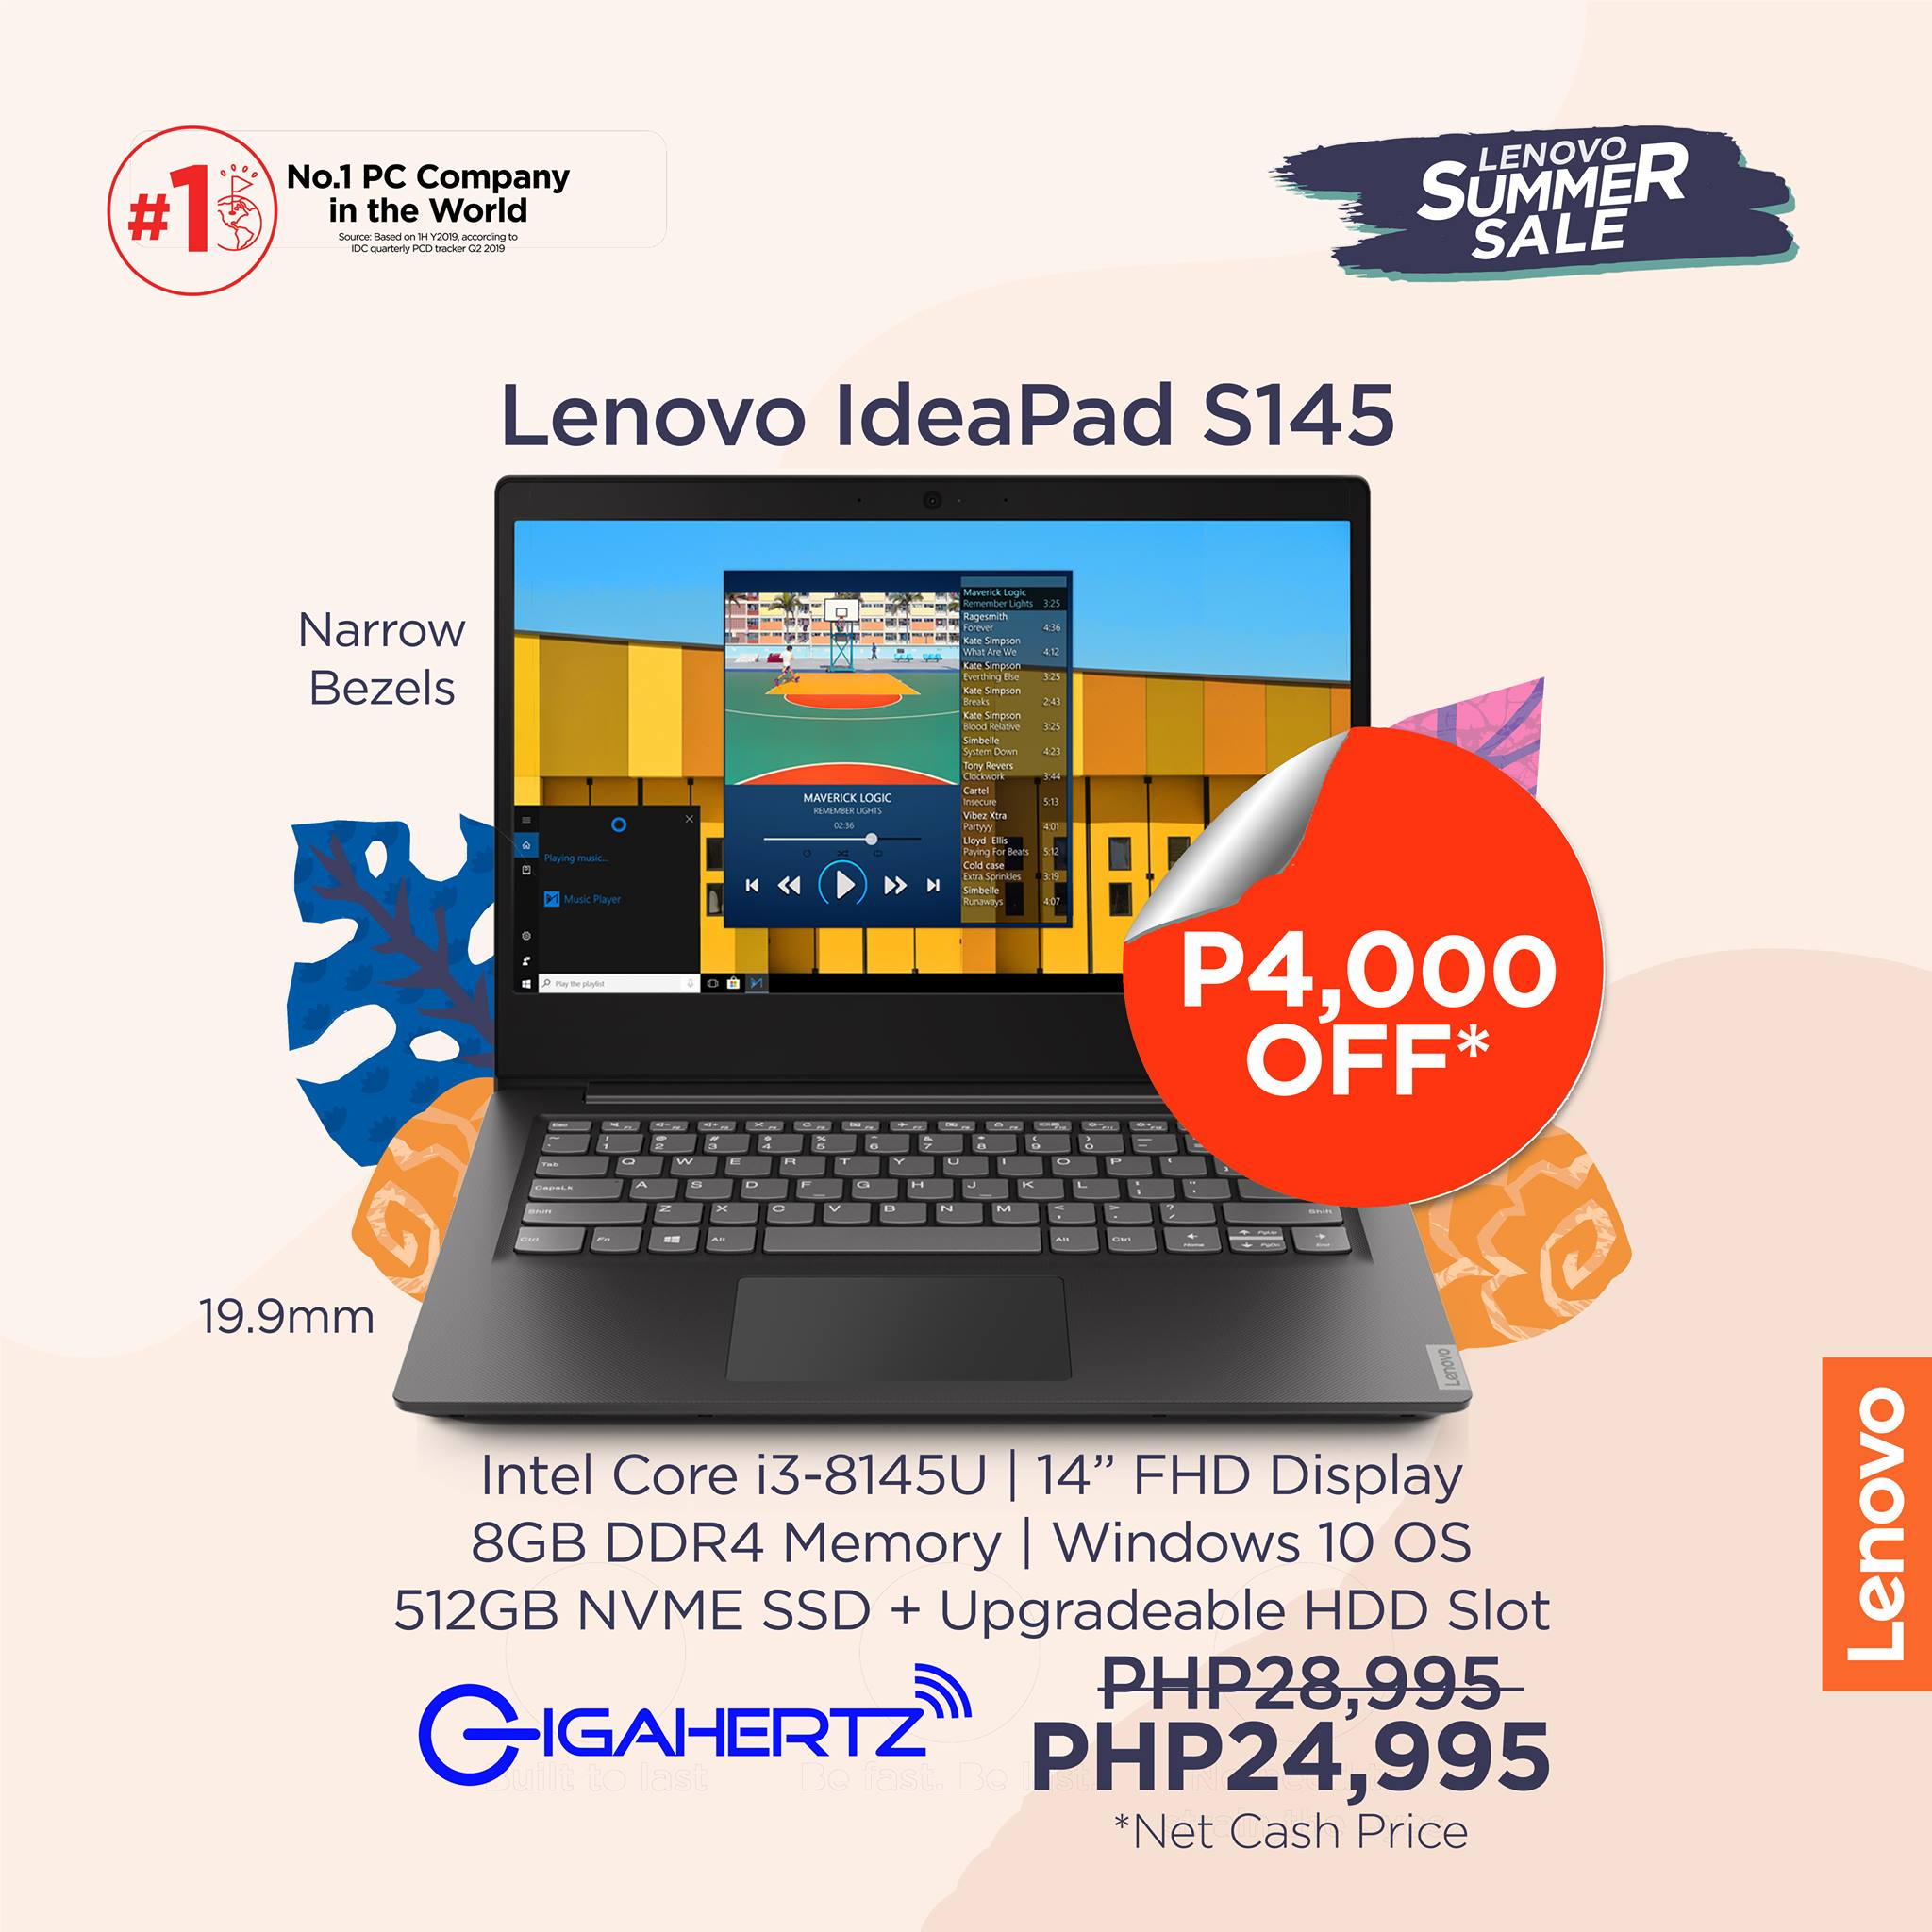 best-laptops-to-buy-for-online-teaching-below-p30k-in-2020-philippines-image-3